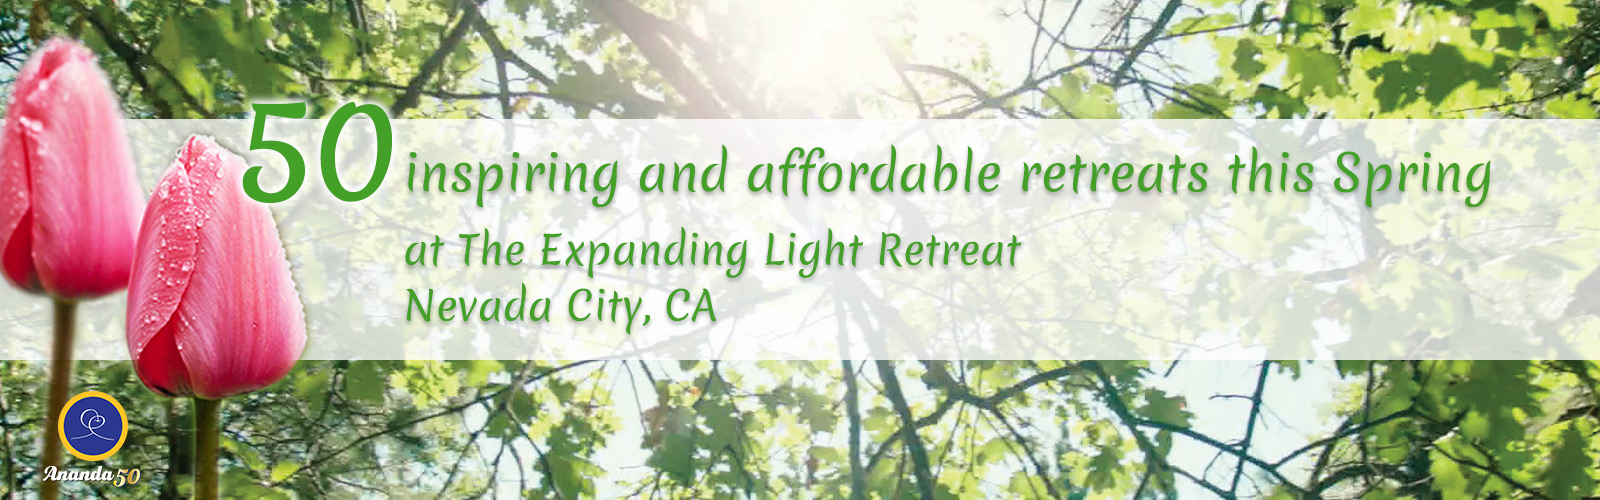 50 Inspiring and Affordable Retreats At Expanding Light